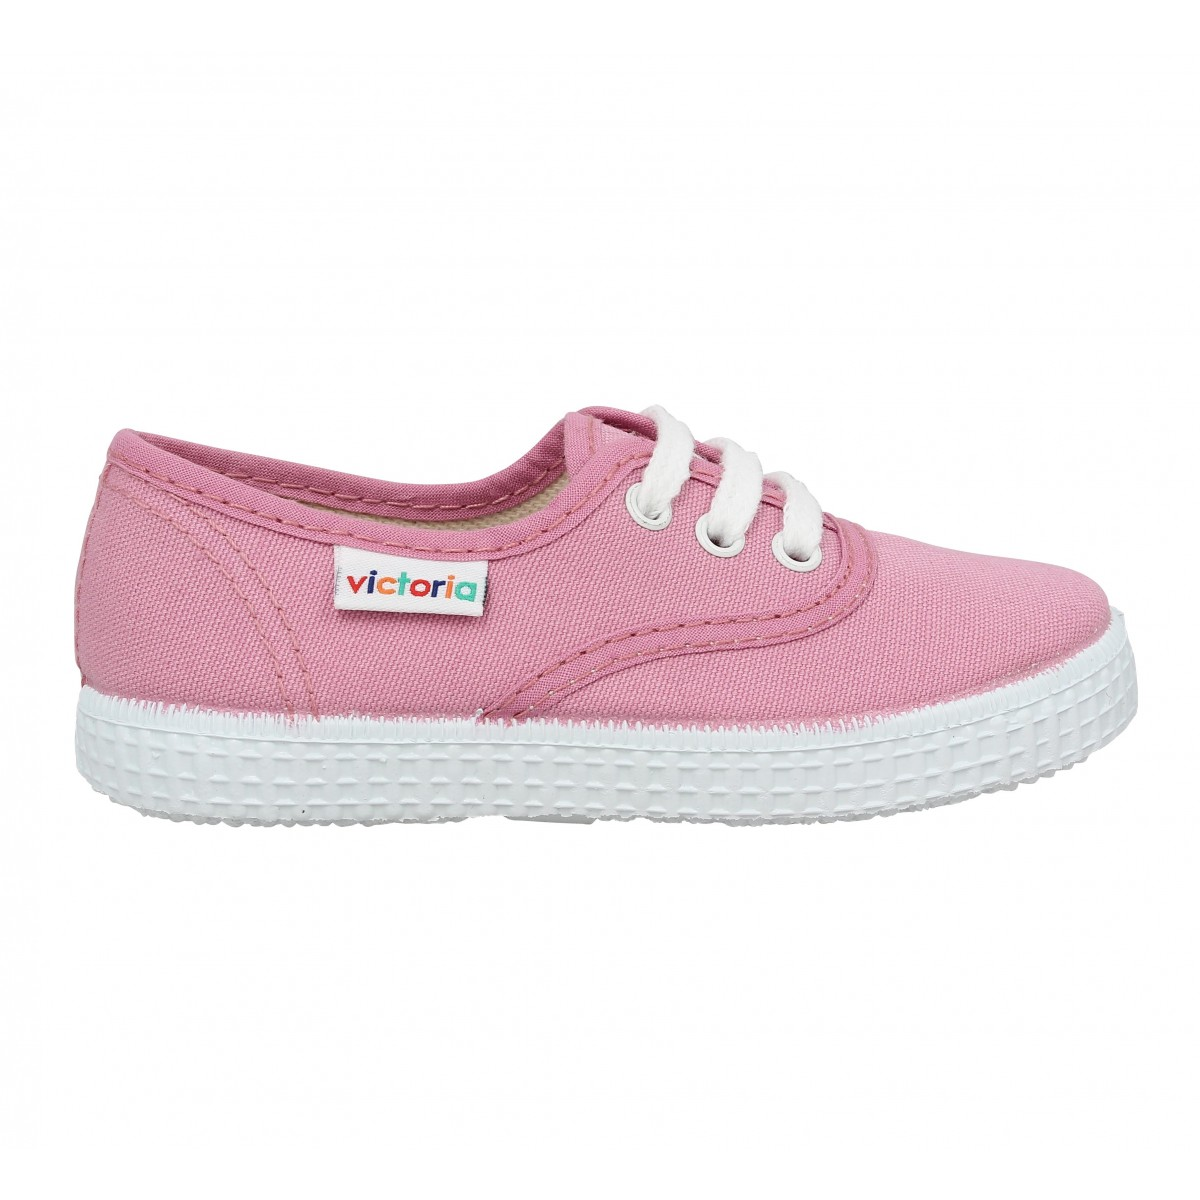 Chaussures besson prix chaussures besson page 3 - Besson chaussures enfant ...